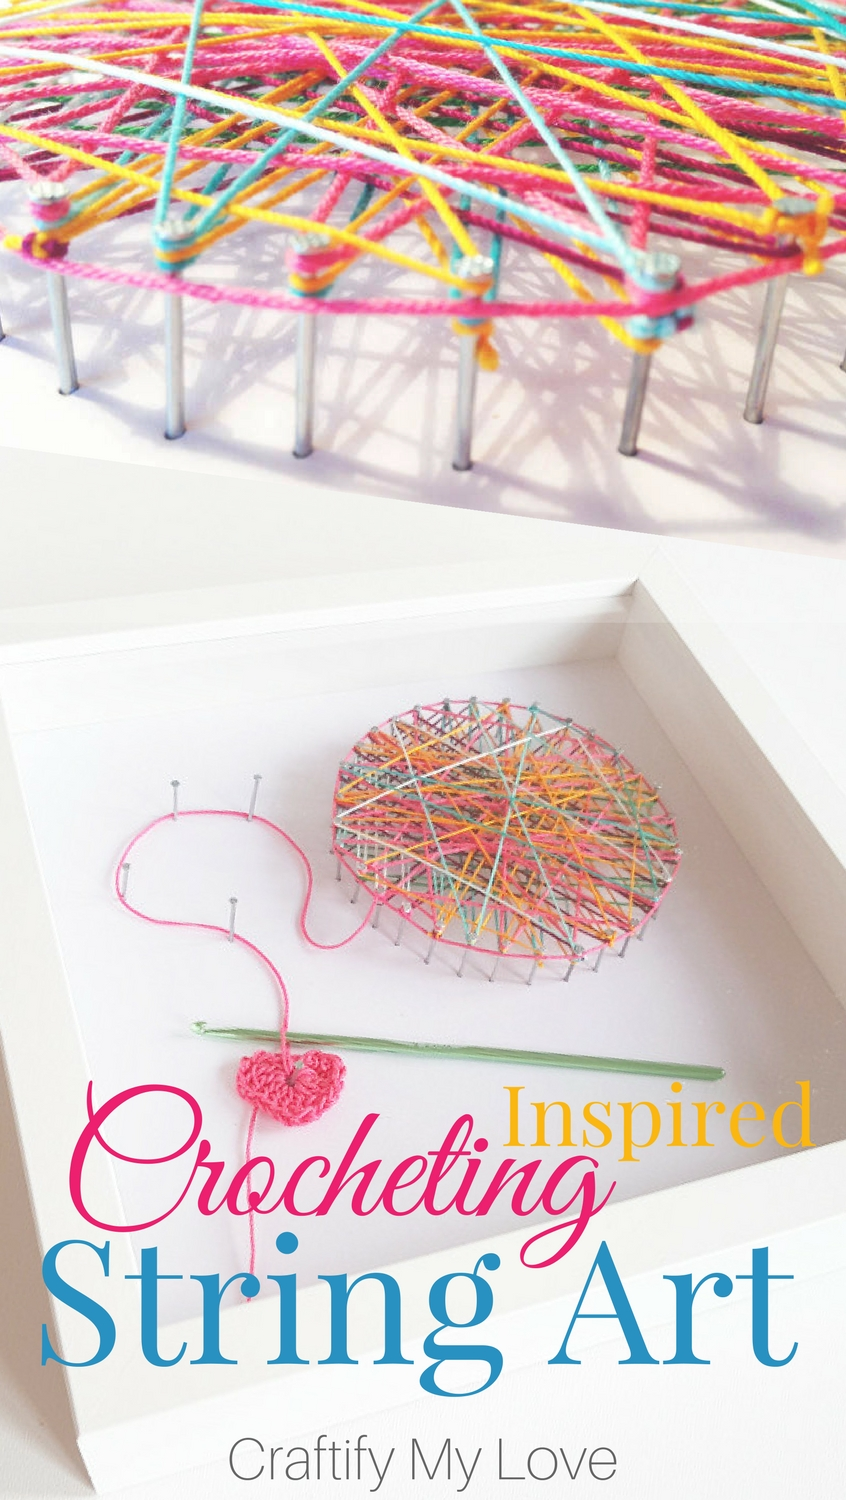 Crocheting inspired string art. Click for easy step by step tutorial | #stringart #crochetlovers #lovetocrochet #iheartcrochet #wallart #craftroomdecor #shadowbox #crochetinginspired